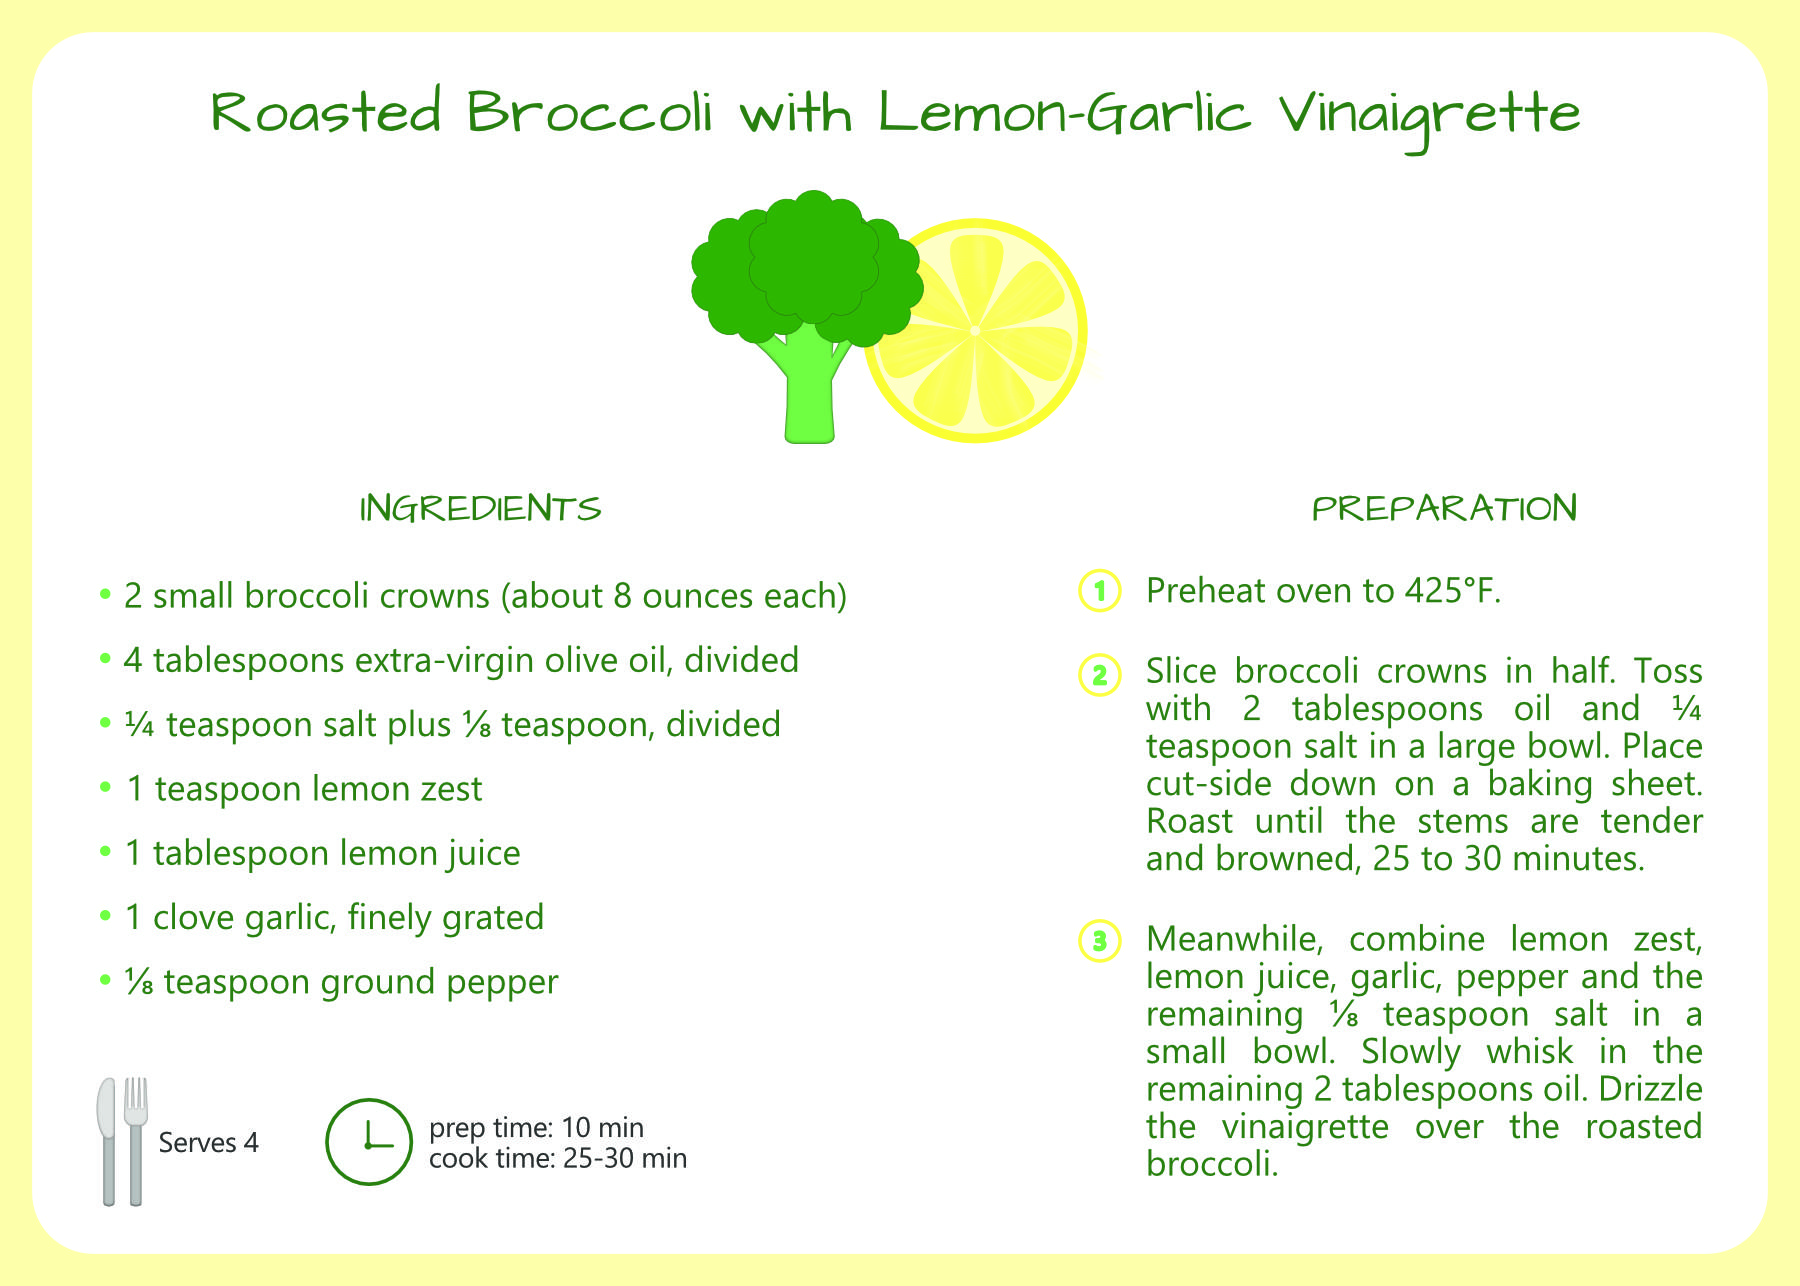 Roasted Broccoli with Lemon-Garlic Vinaigrette Recipe Card and icon design for Make a Mark global awareness challenge to combat for insecurity